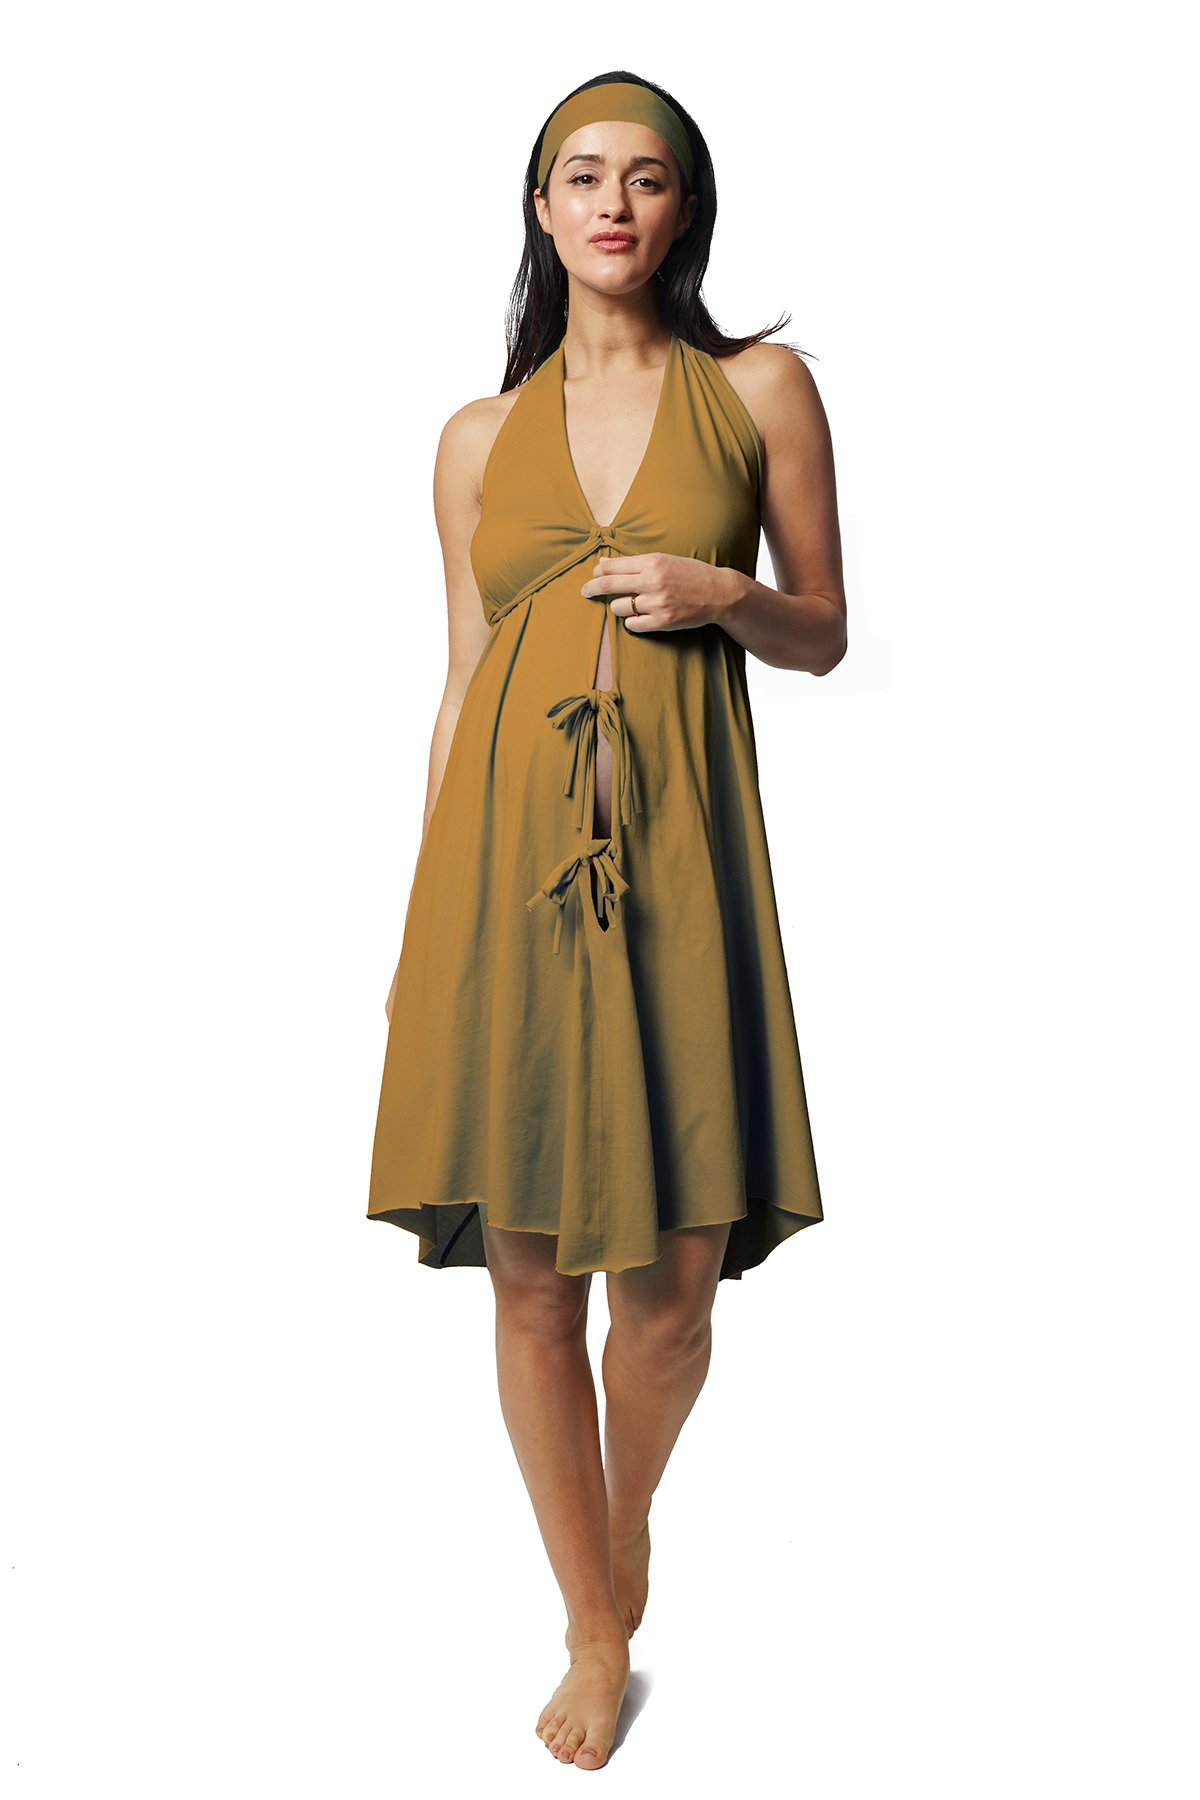 Pretty Pushers Cotton Jersey Labor Gown Plus Size (18-26 pre-Pregnancy) Olive